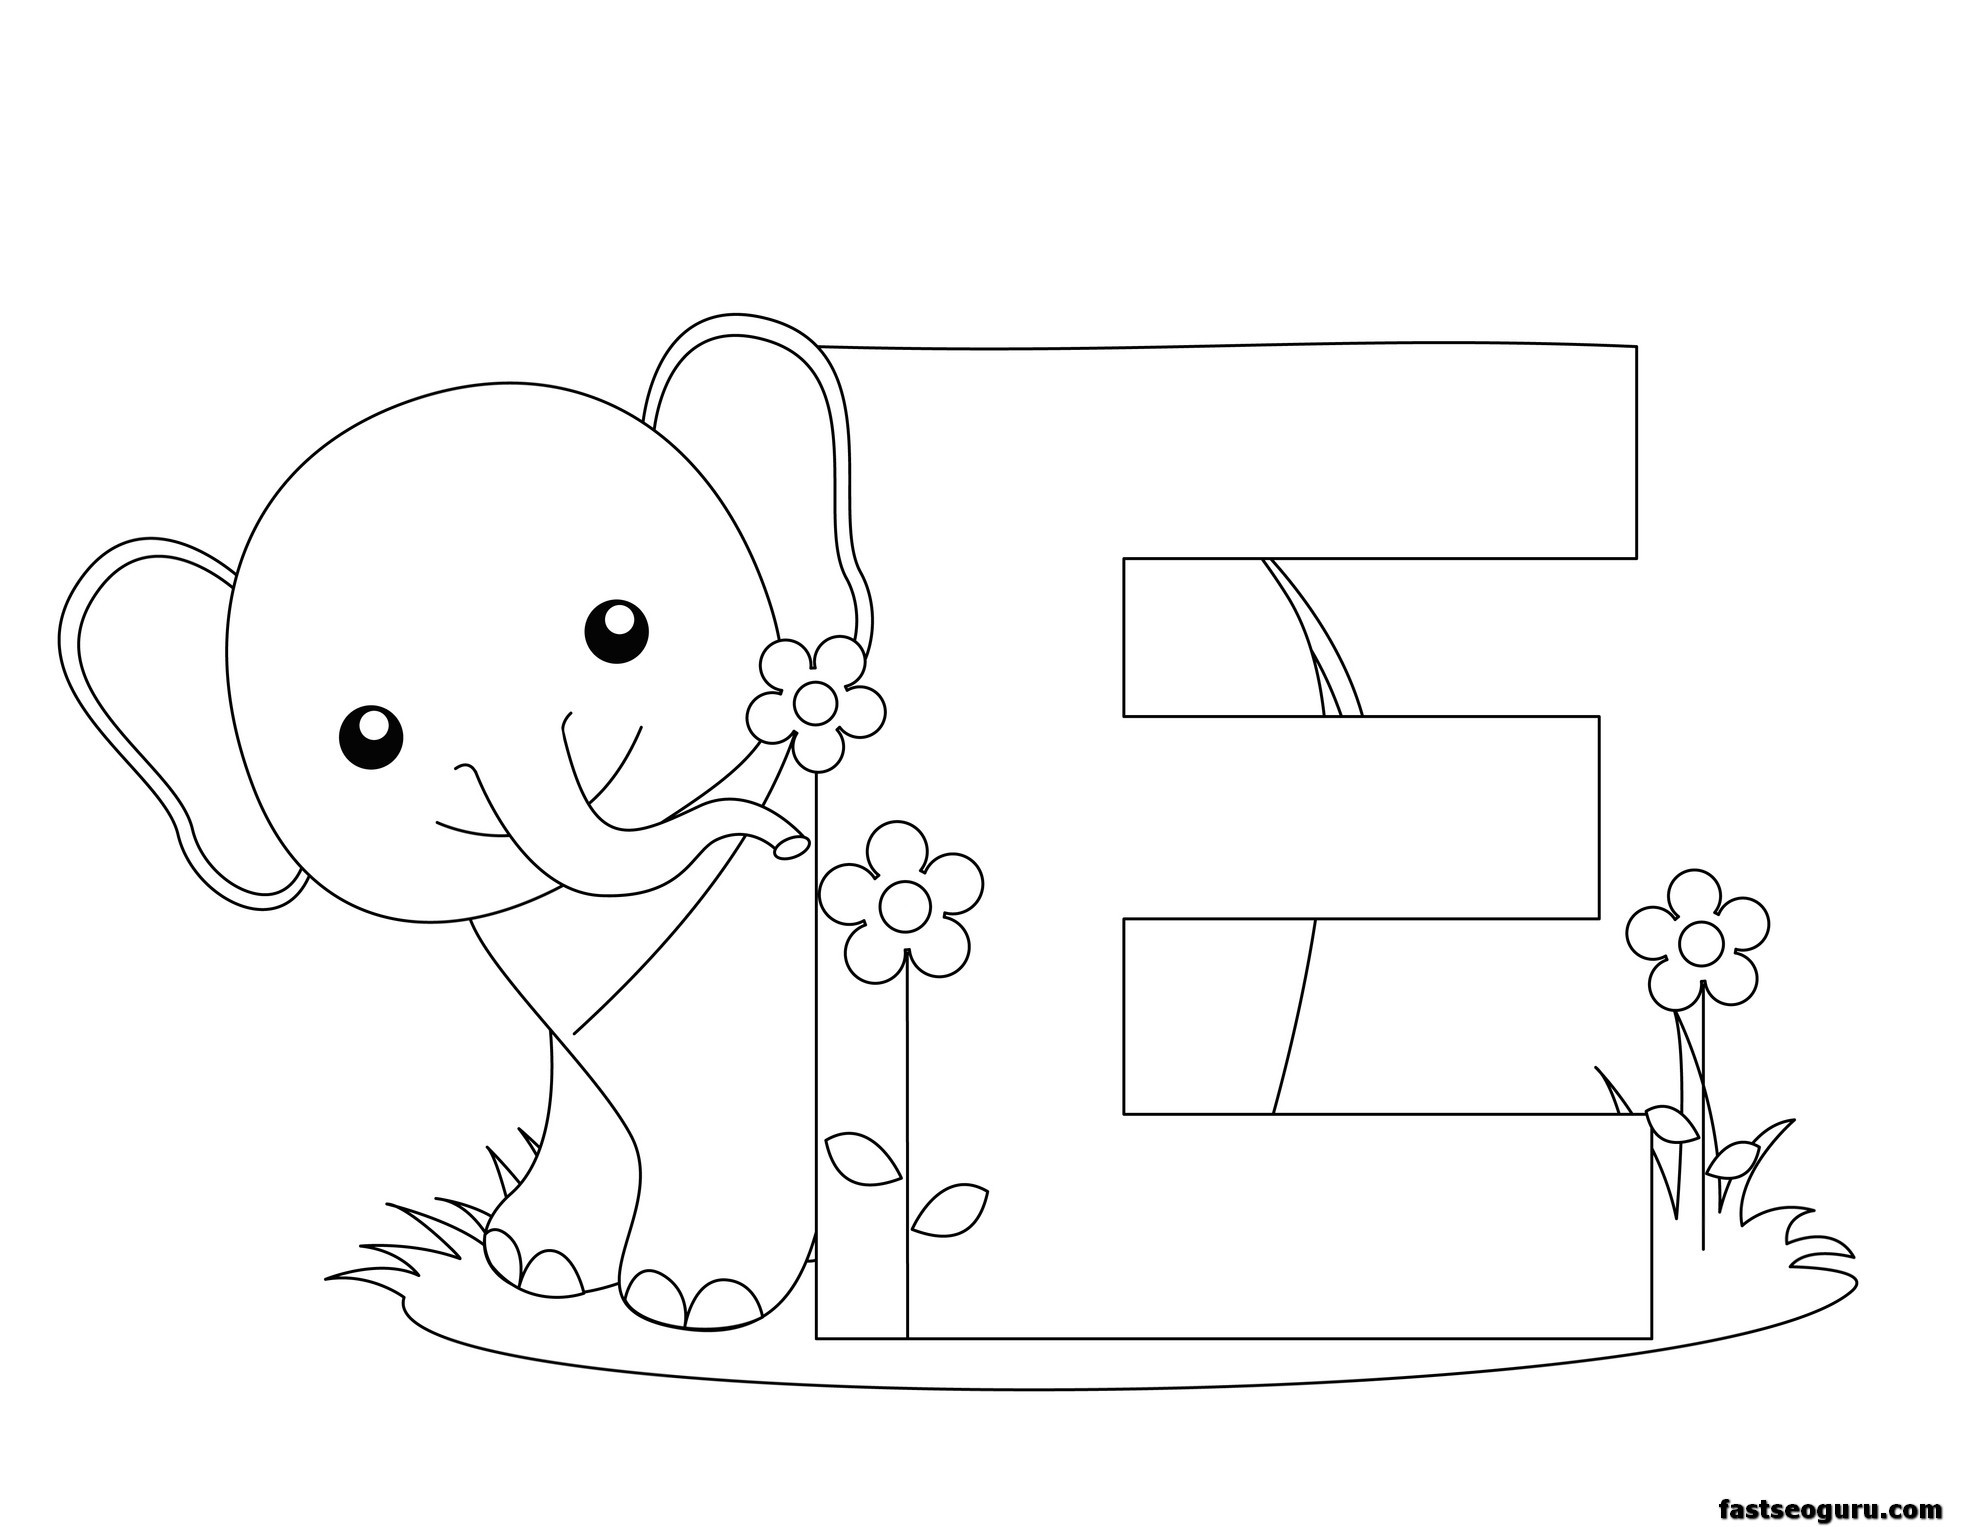 printable animal alphabet letter e for elephant printable coloring pages for kids